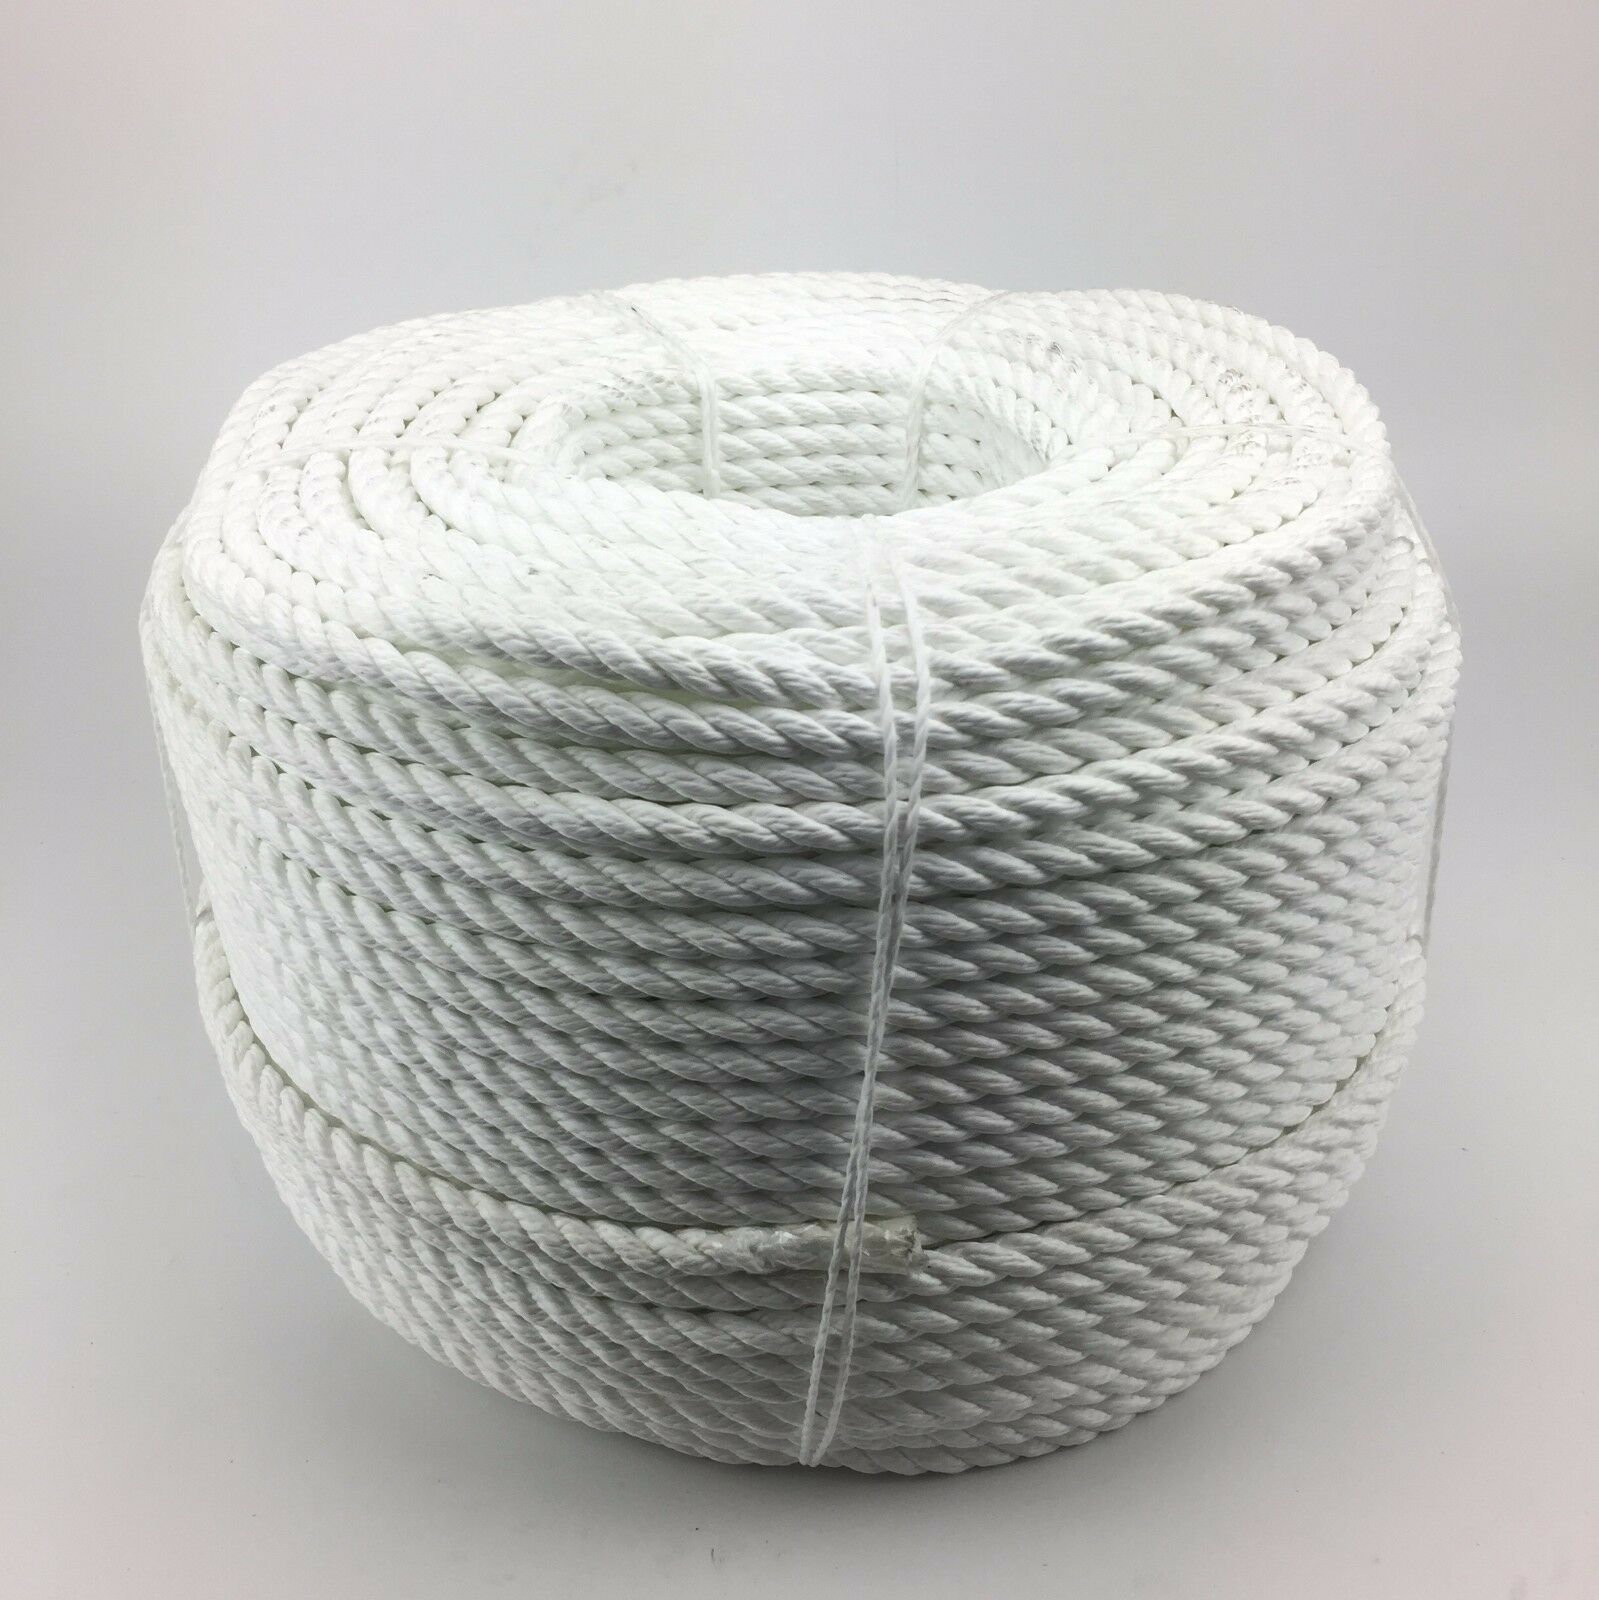 3 Strand White Multifilament 12mm (Floating Rope) x 220m Coil Boats Yachts